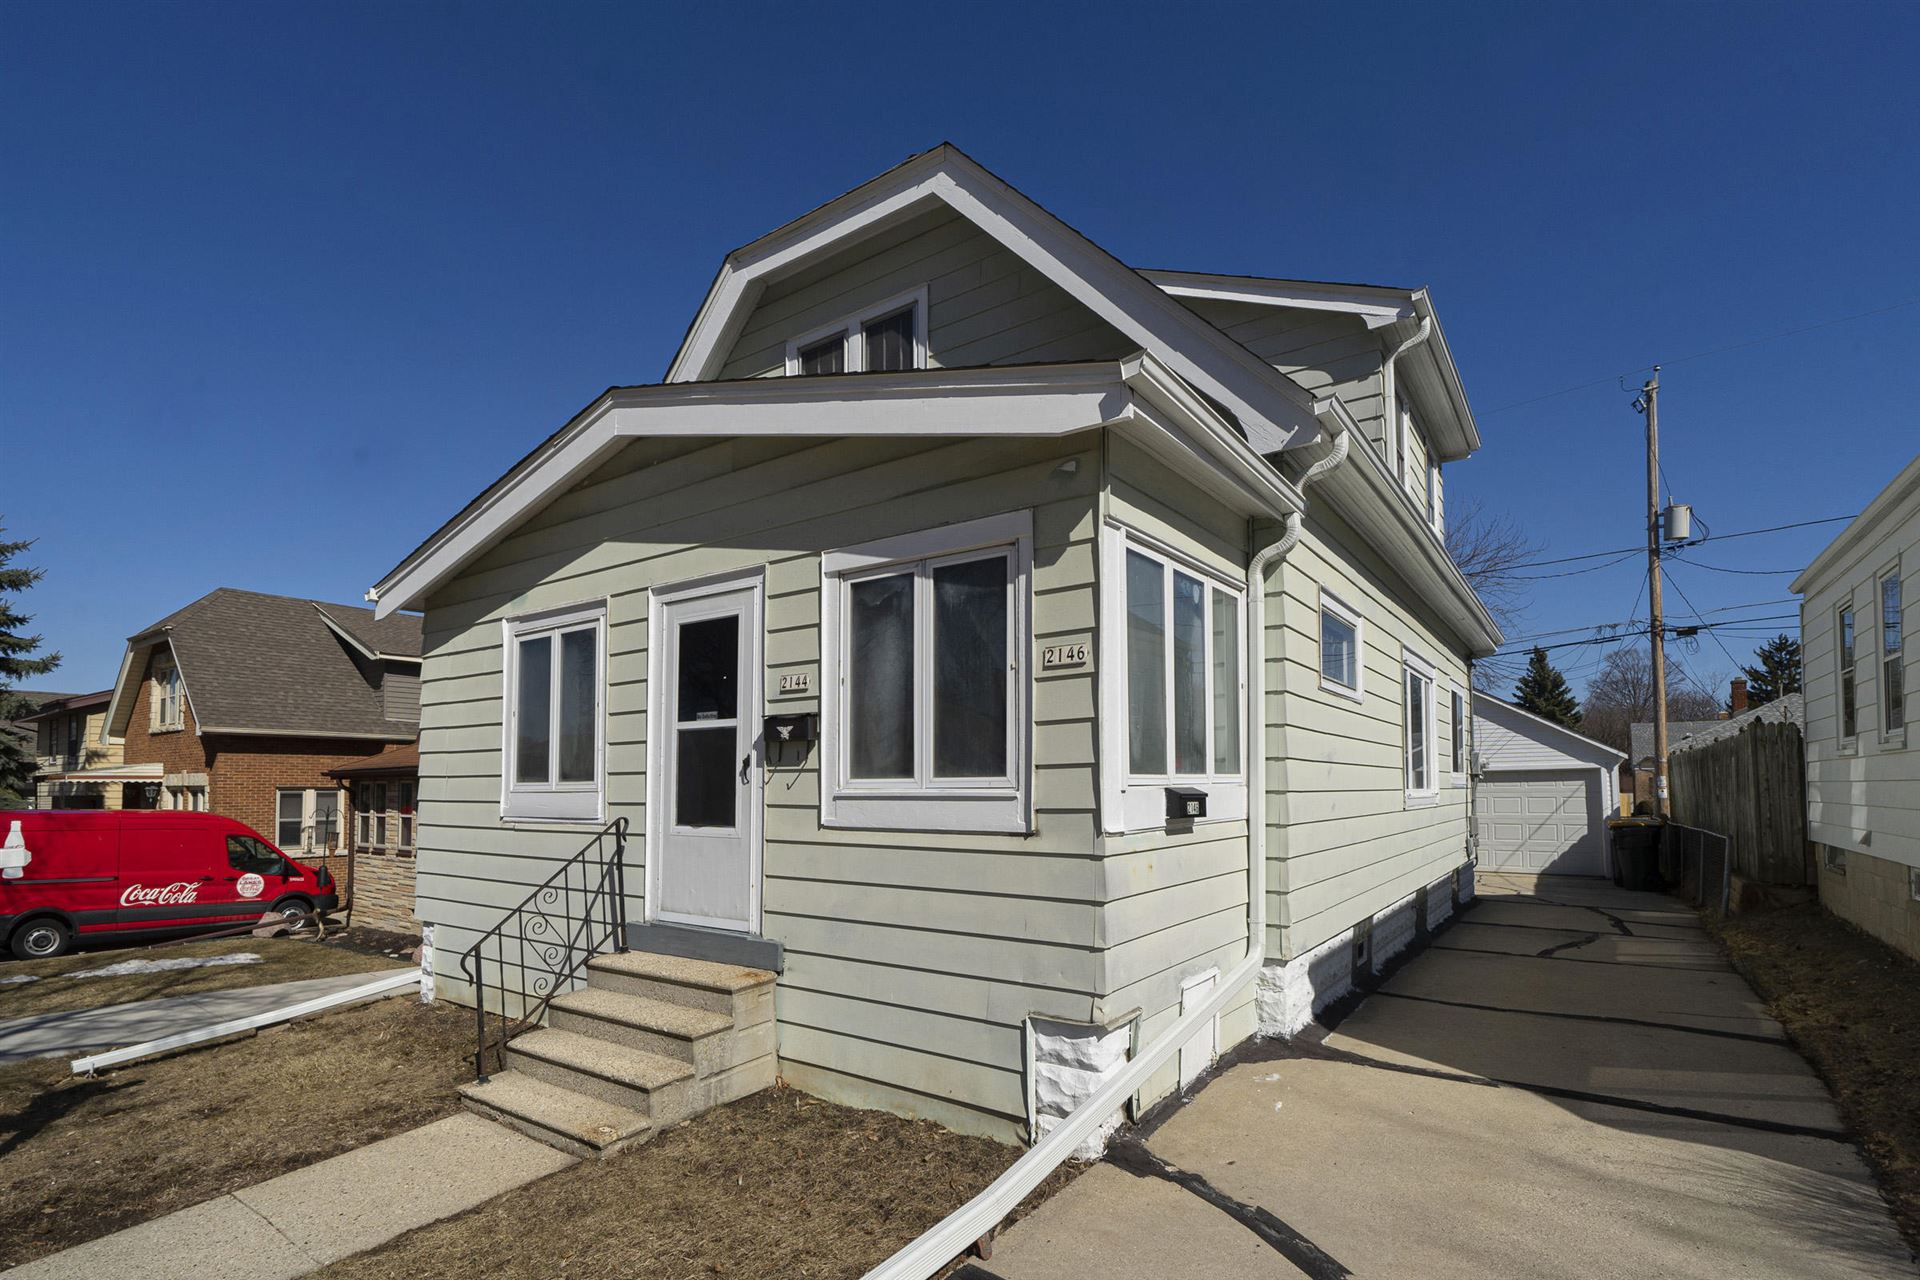 2144 S 89th St #2146, West Allis, WI 53227 - #: 1680590